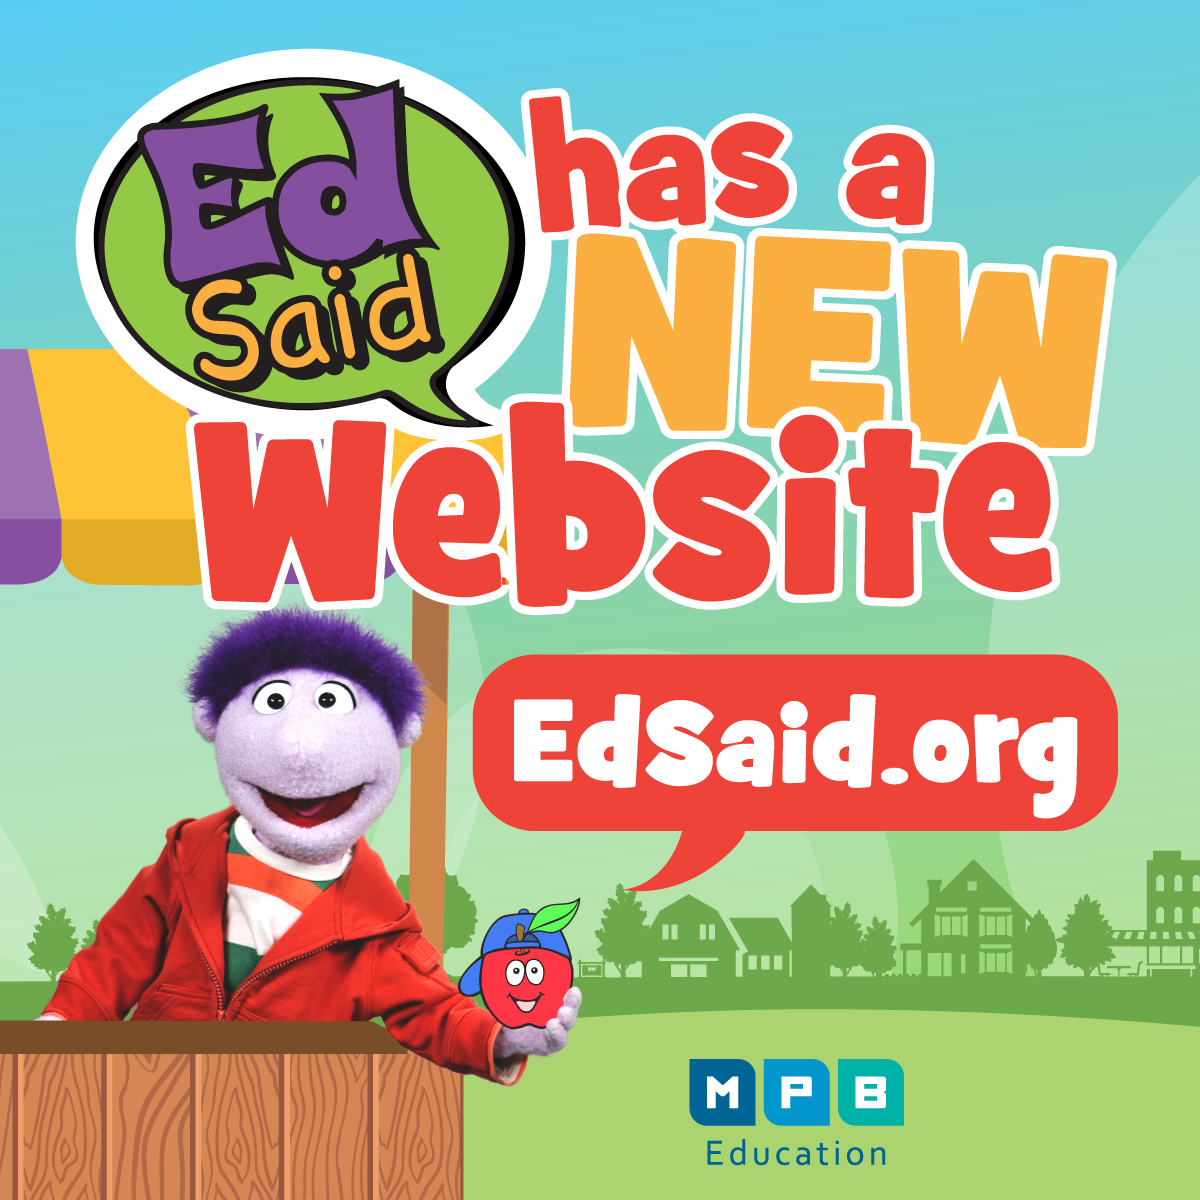 Check out the new Ed Said website!